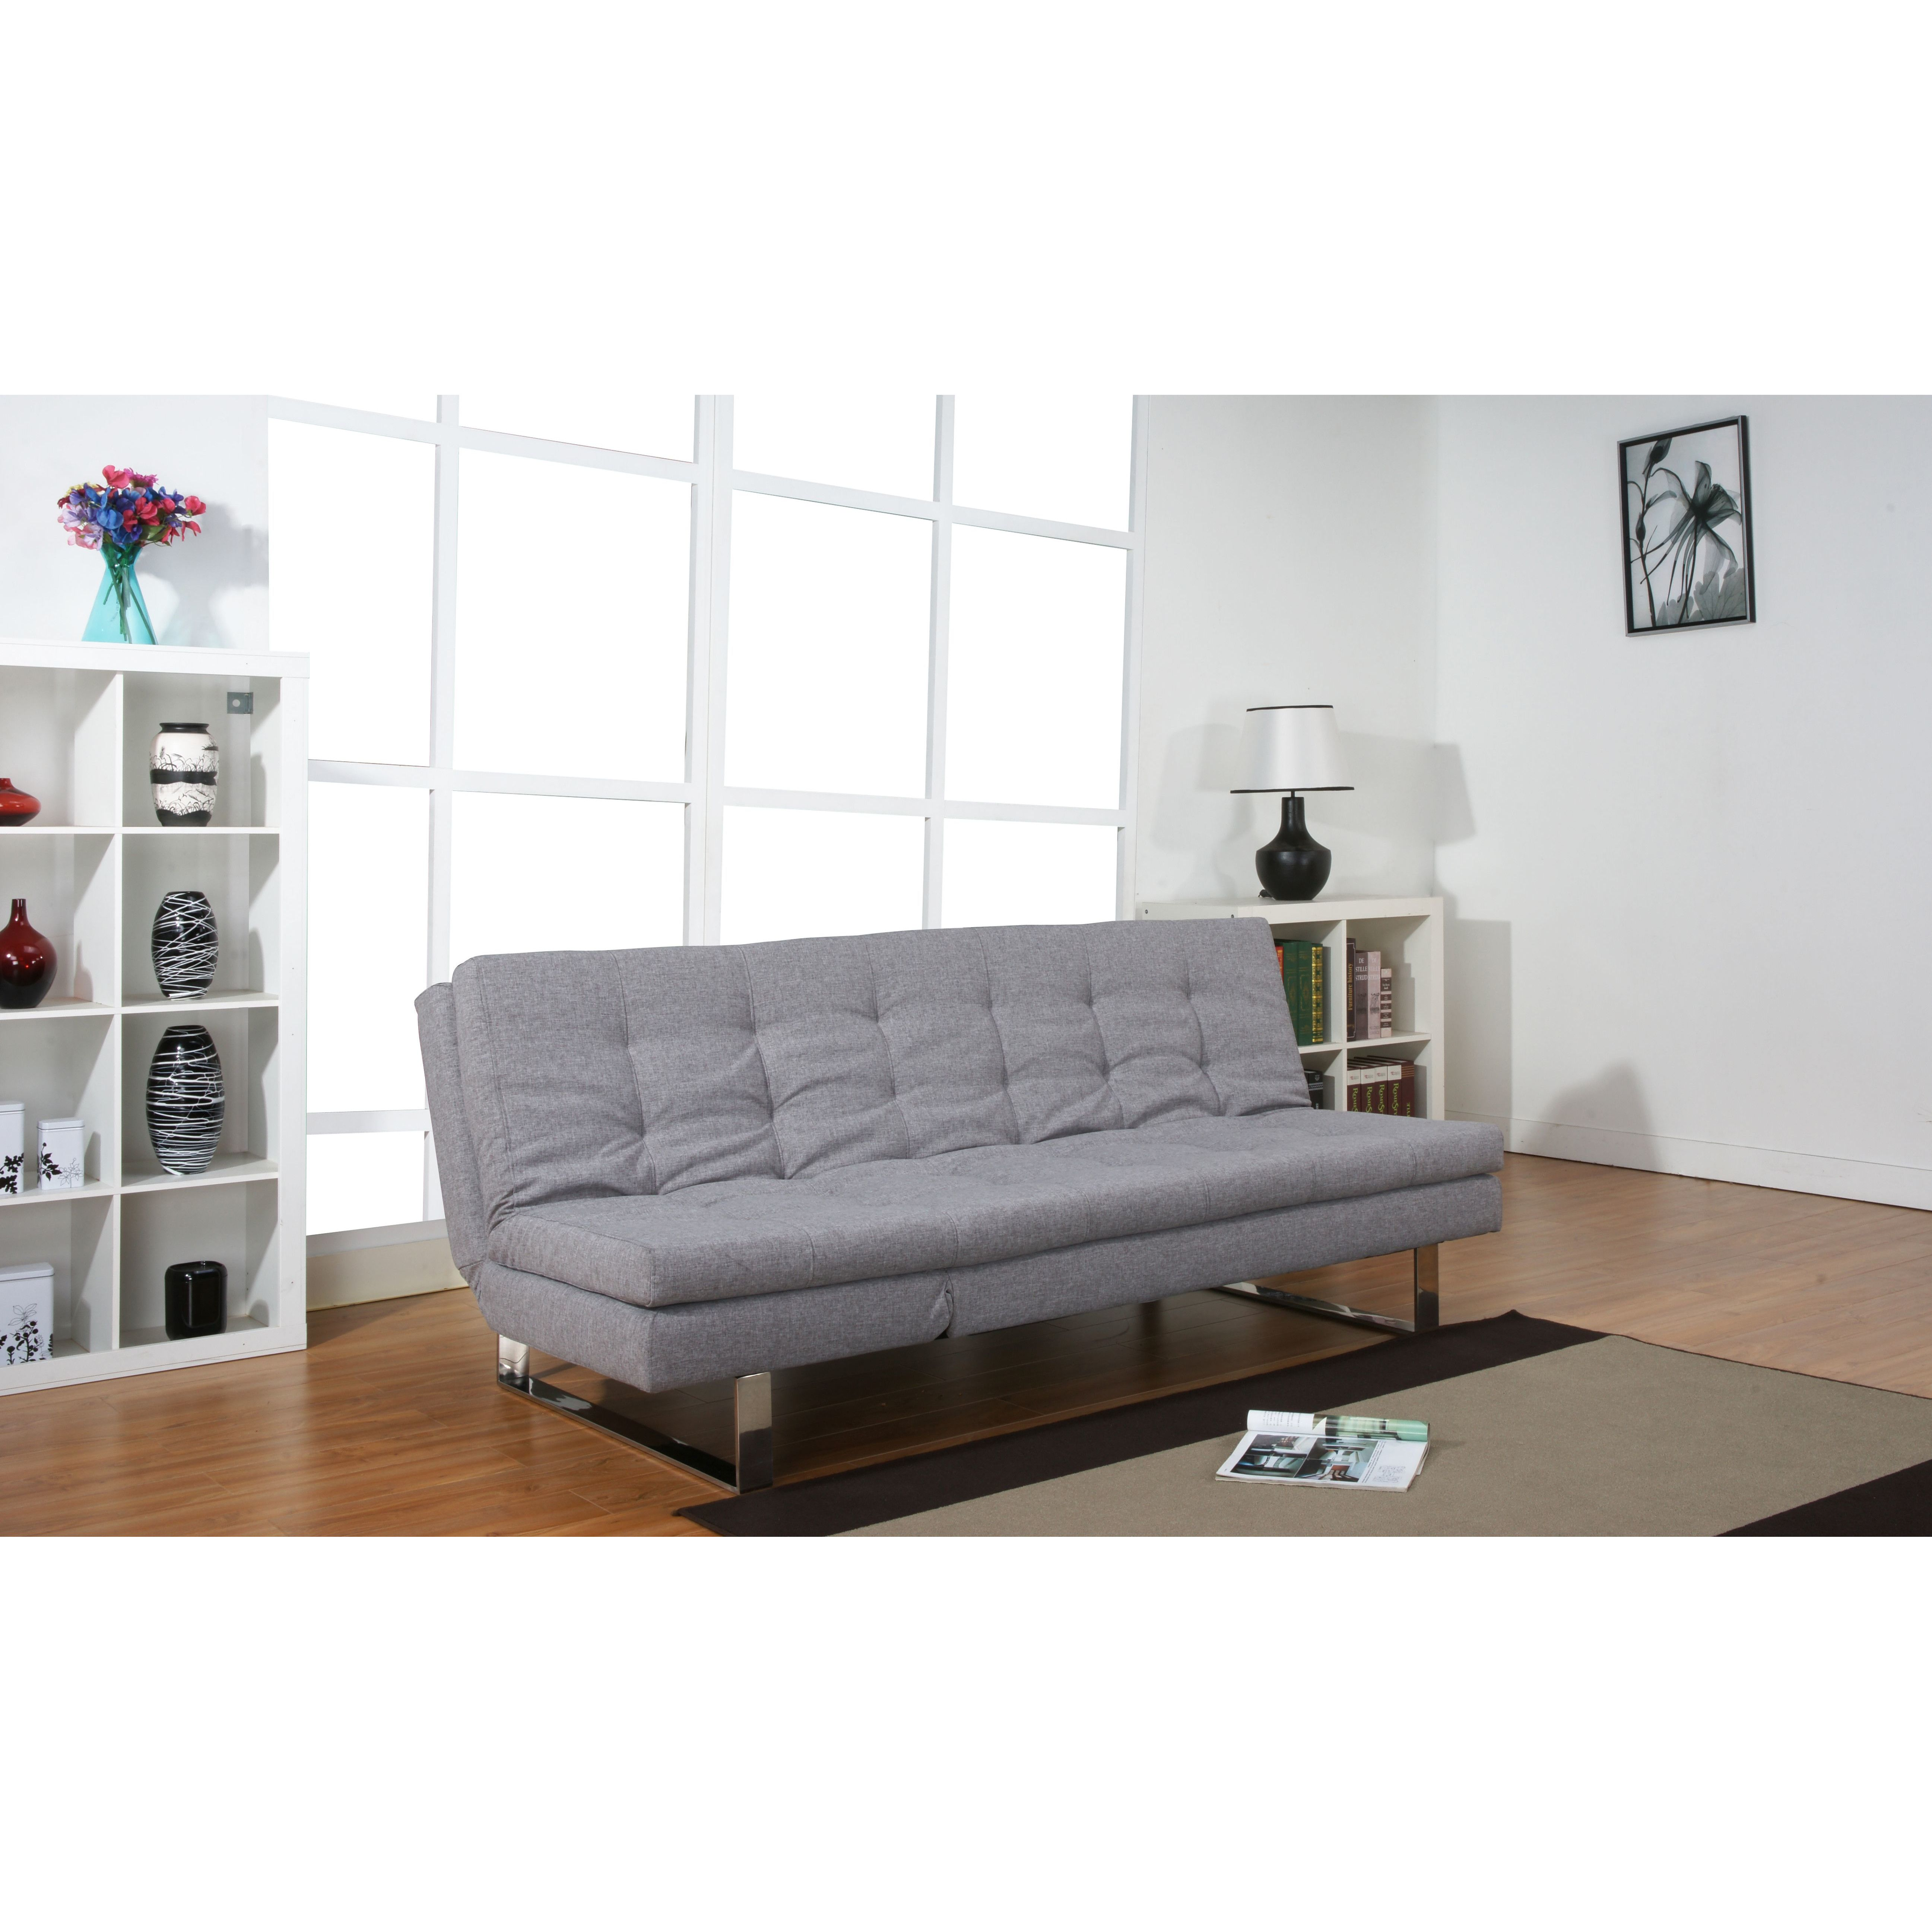 Sofa Pillows Leader Lifestyle Milano Seater Clic Clac Sofa Bed u Reviews Wayfair co